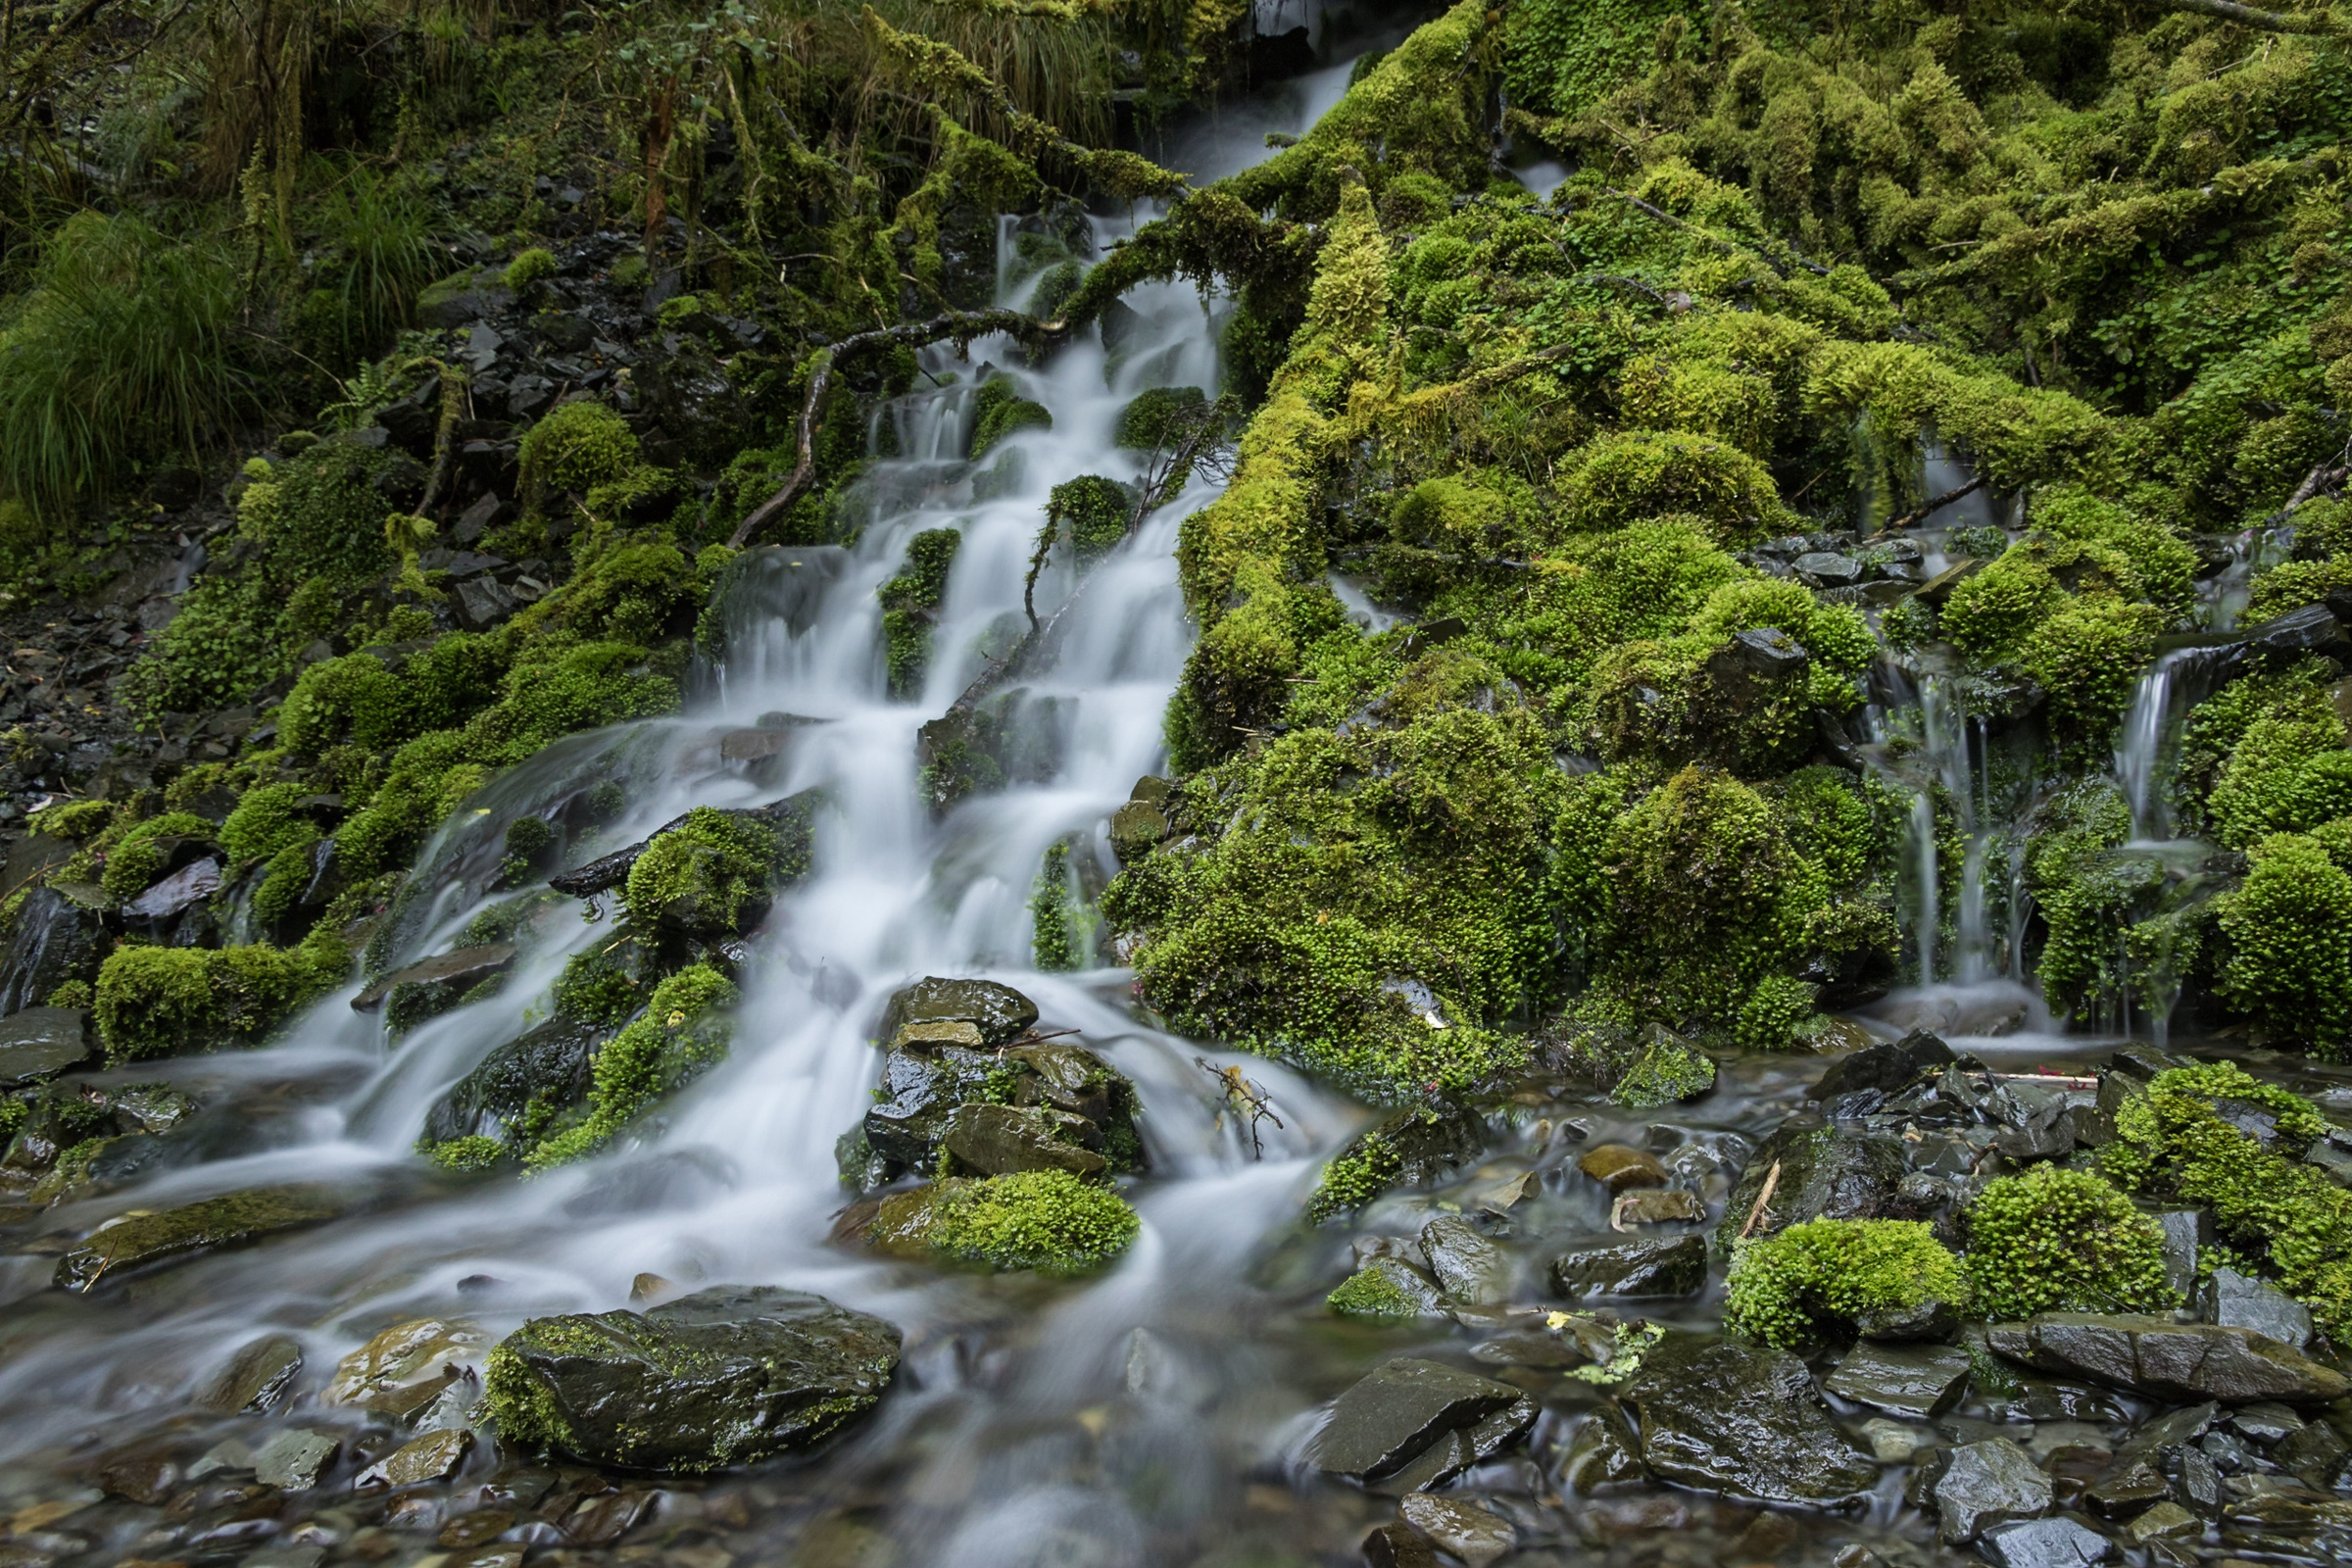 a New Zealand waterfall covered in green moss